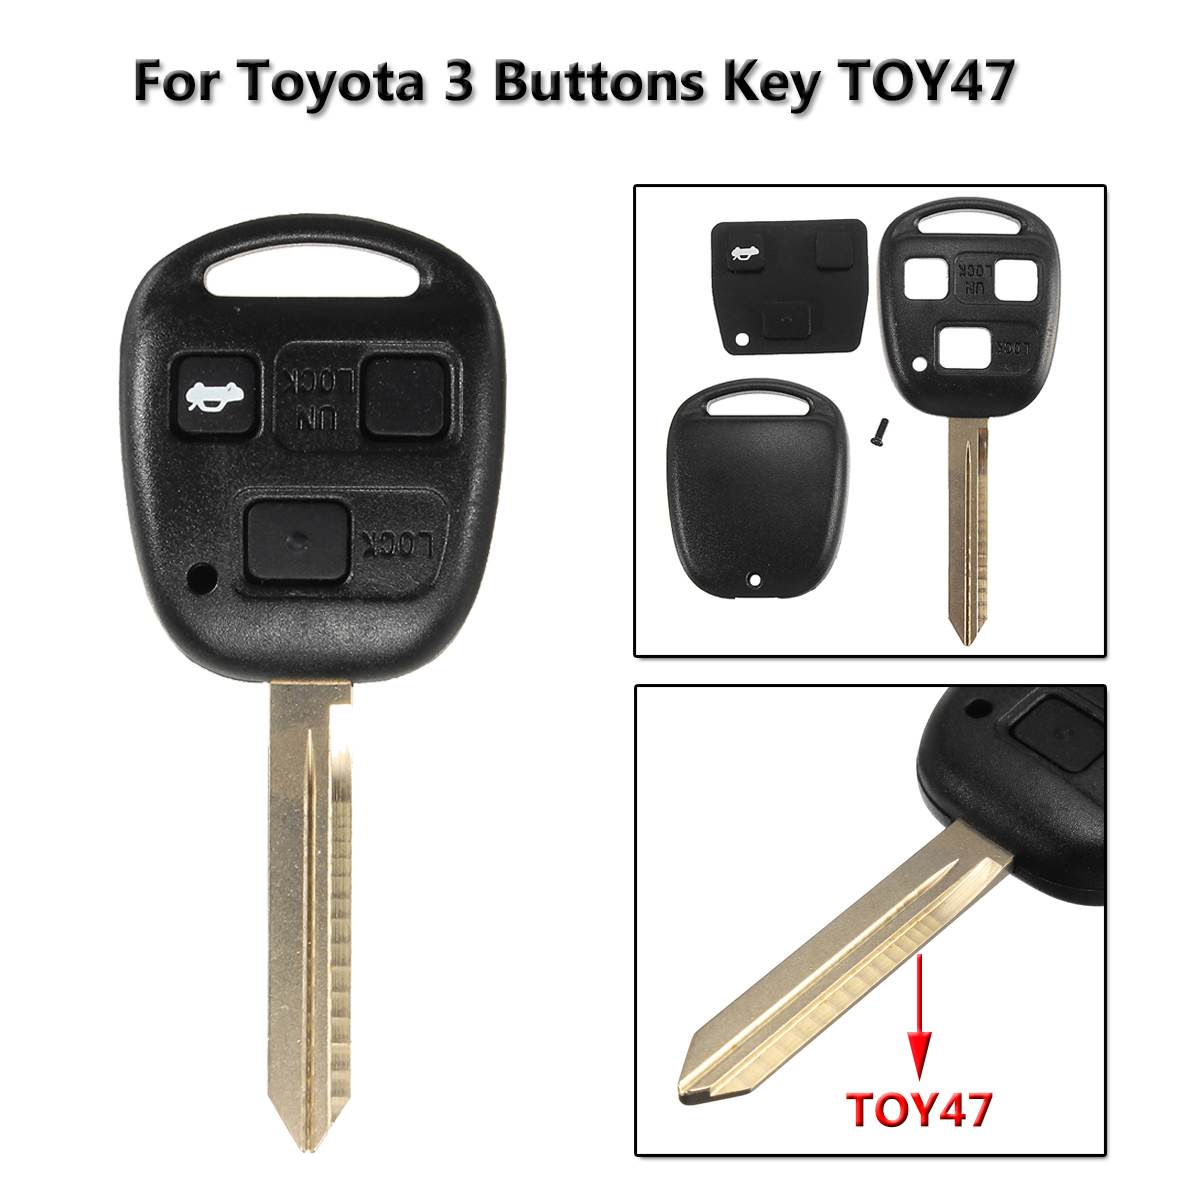 3 <font><b>Button</b></font> <font><b>Remote</b></font> <font><b>Key</b></font> Case Fob Cover <font><b>Key</b></font> Shell with TOY47 blade For <font><b>Toyota</b></font> Corolla Camry Yaris Hiace <font><b>Avensis</b></font> Car Cover Case image